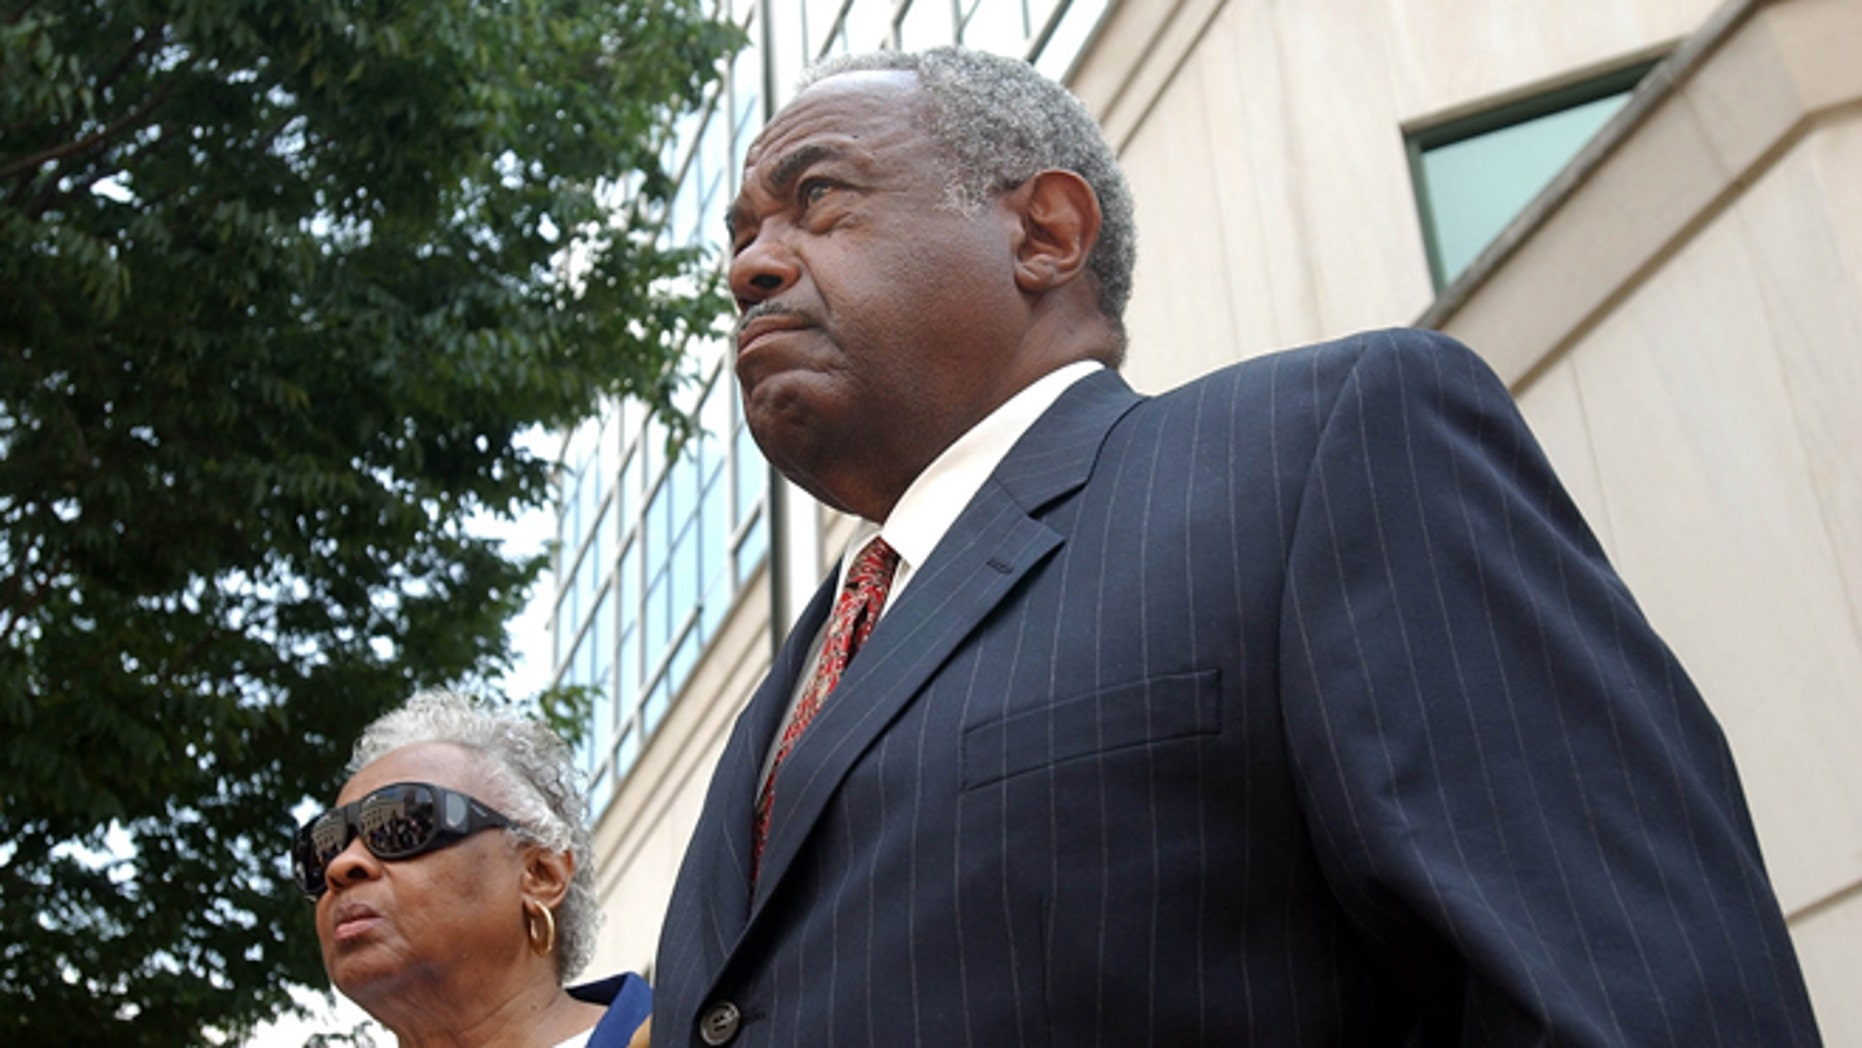 In this 2005 file photo, former Jefferson County Commissioner Chris McNair reacts outside of the Hugo L. Black Federal Courthouse in Birmingham, Ala., after being indicted on bribery, mail fraud and obstruction in the 1997 - 2003 Jefferson County sewer  operations.